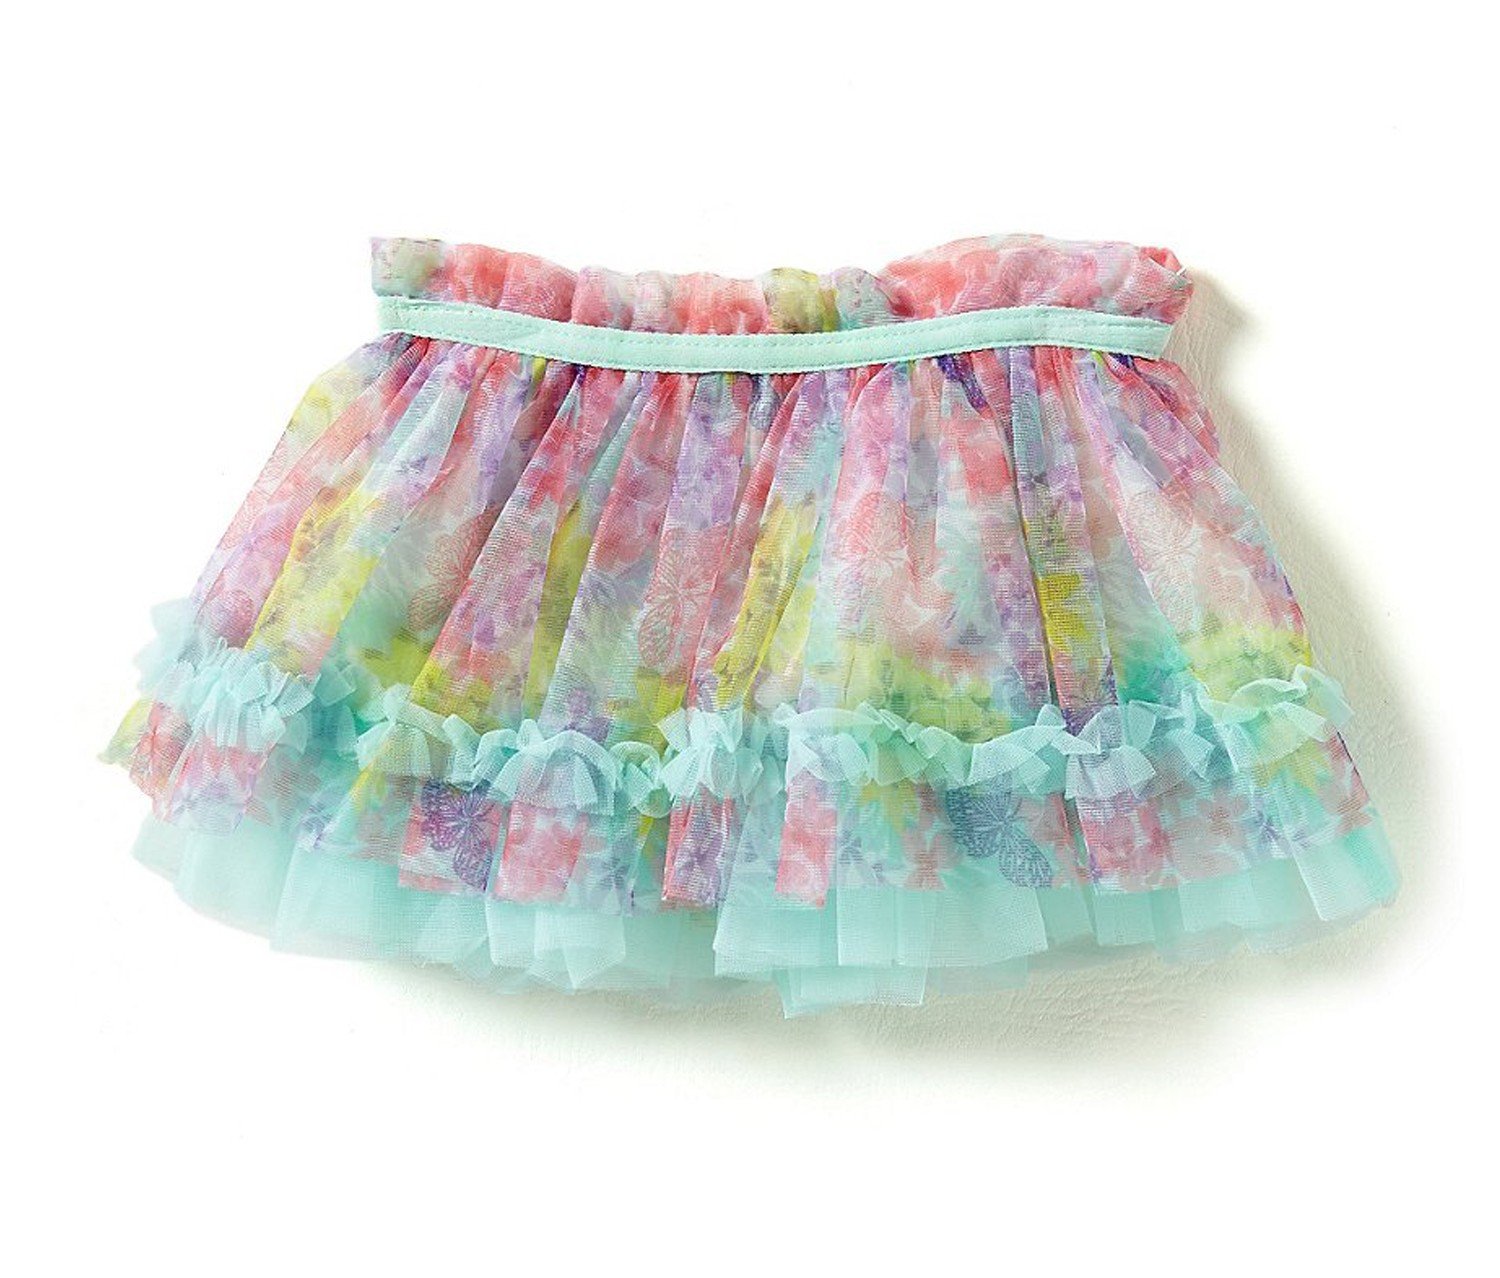 Baby Starters Mesh Floral-Print Tutu Skirt, Green/Turquoise